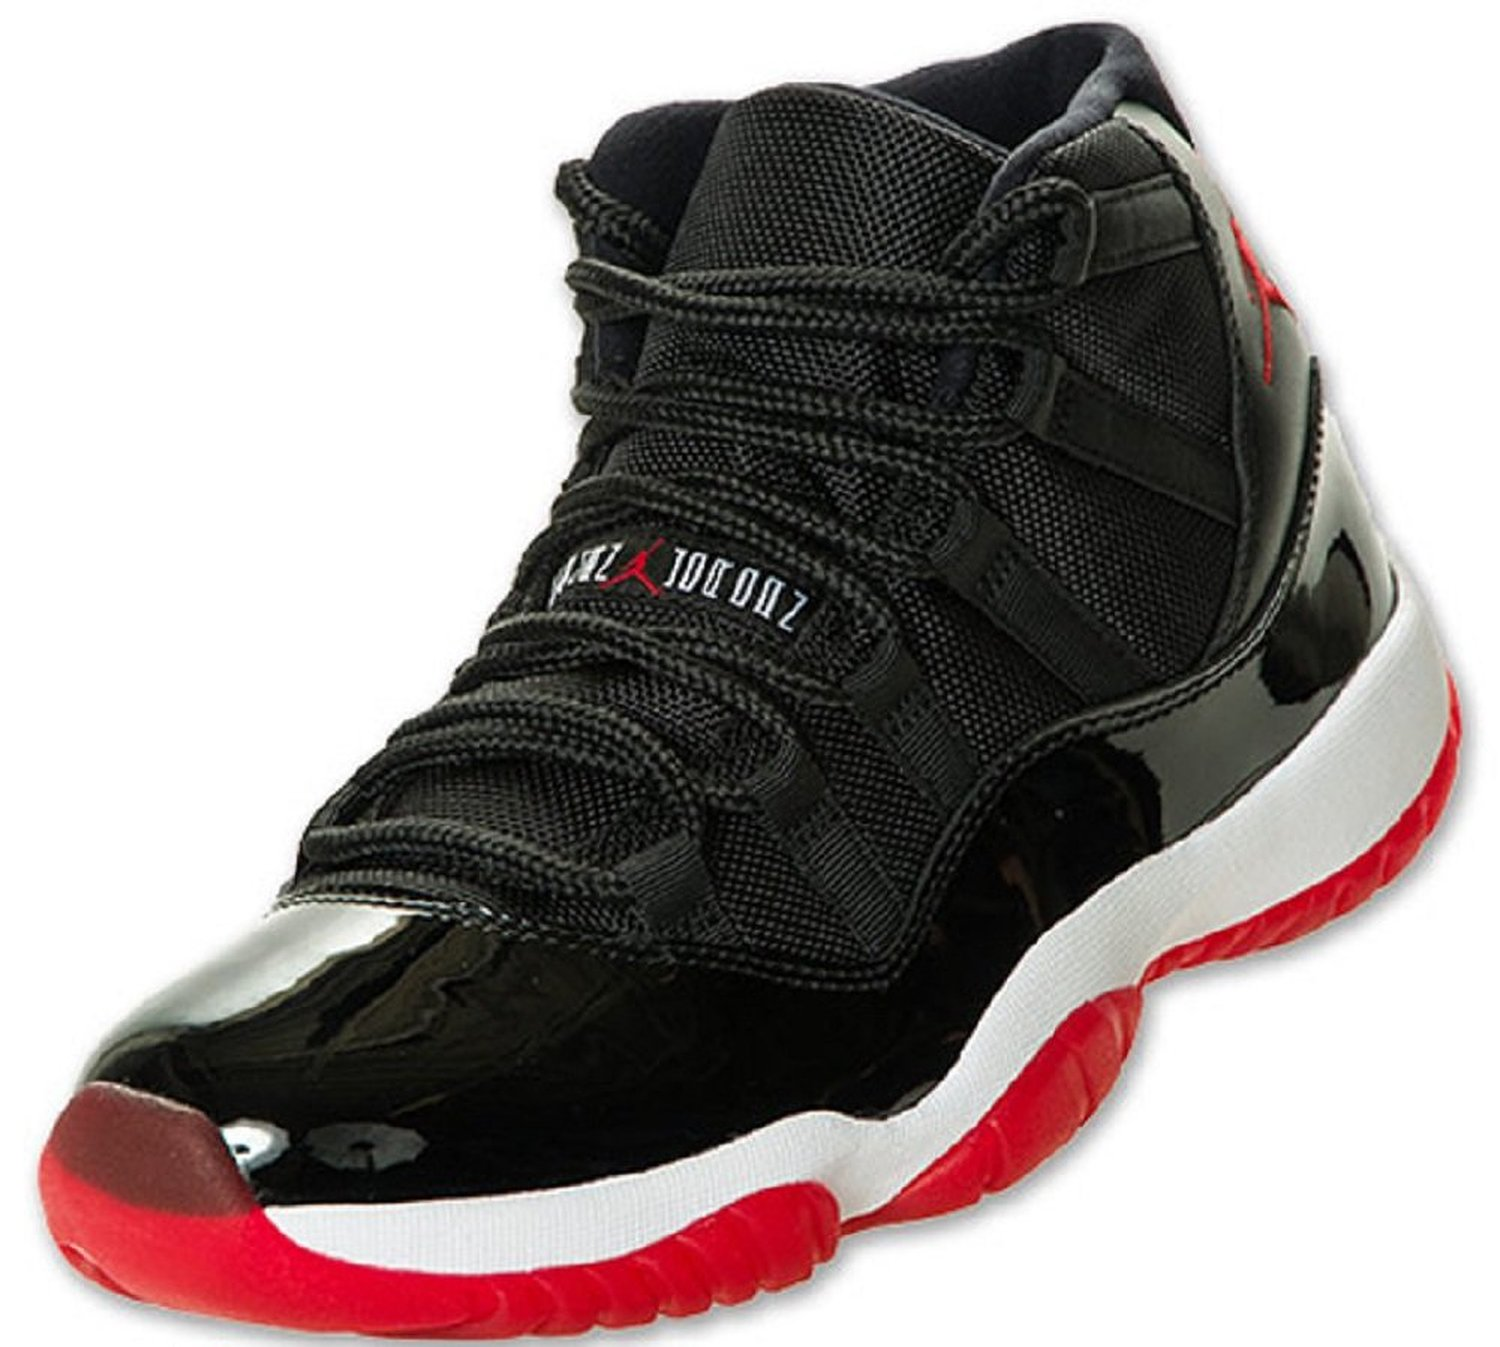 Amazon.com: Mens Nike Air Jordan 11 XI Retro BRED Basketball Shoes Black / White / Varsity Red 378037-010: Shoes